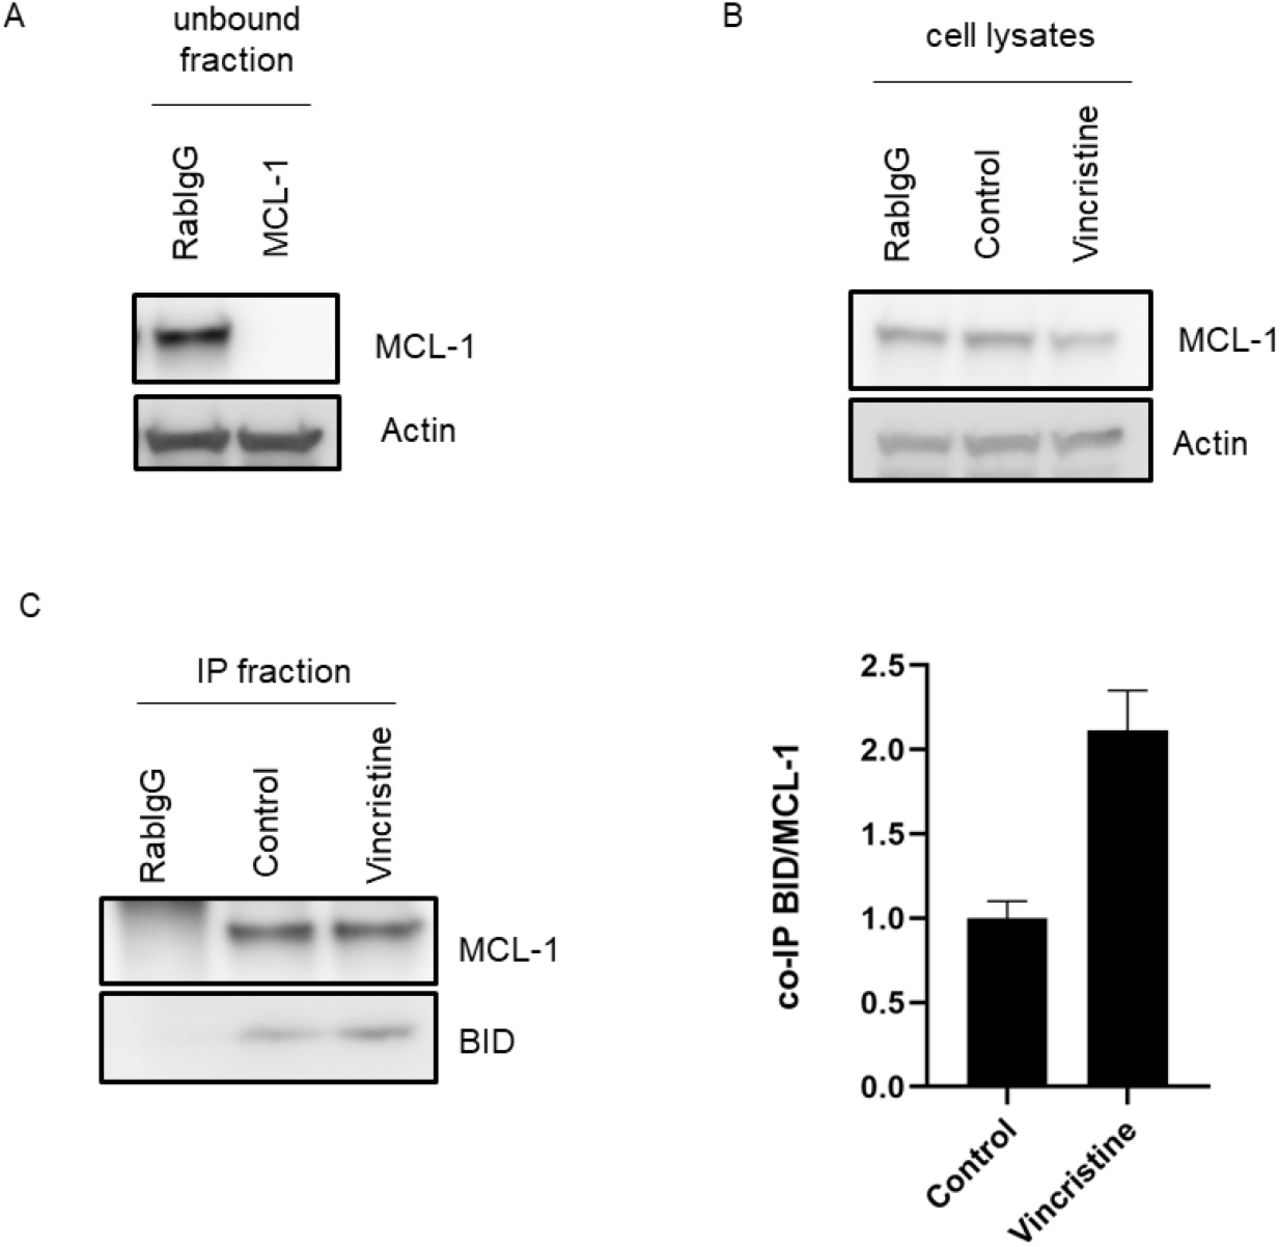 Vincristine induces resistance in RMS cells through BID inhibition by MCL-1. (A) Western blot results of the unbound fraction after MCL-1 <t>immunoprecipitation.</t> High efficiency of MCL-1 immunoprecipitation compared to Rabbit IgG control antibody. (B) Western blot results showing MCL-1 levels in CW9019 cell lysates (incubated with vincristine or DMSO for 36 hours) before performing the immunoprecipitation. (C) Left panel: Western blot results of the co-immunoprecipitation between MCL-1 and BID. Right panel: Quantification of the optical density of each protein and represented as binding ratio between BID and MCL-1. Results showed a significant increase in BID and MCL-1 binding after vincristine treatment, which is restored to control levels after the addition of S63845. Values indicate mean values ± SEM from at least three independent experiments, * p